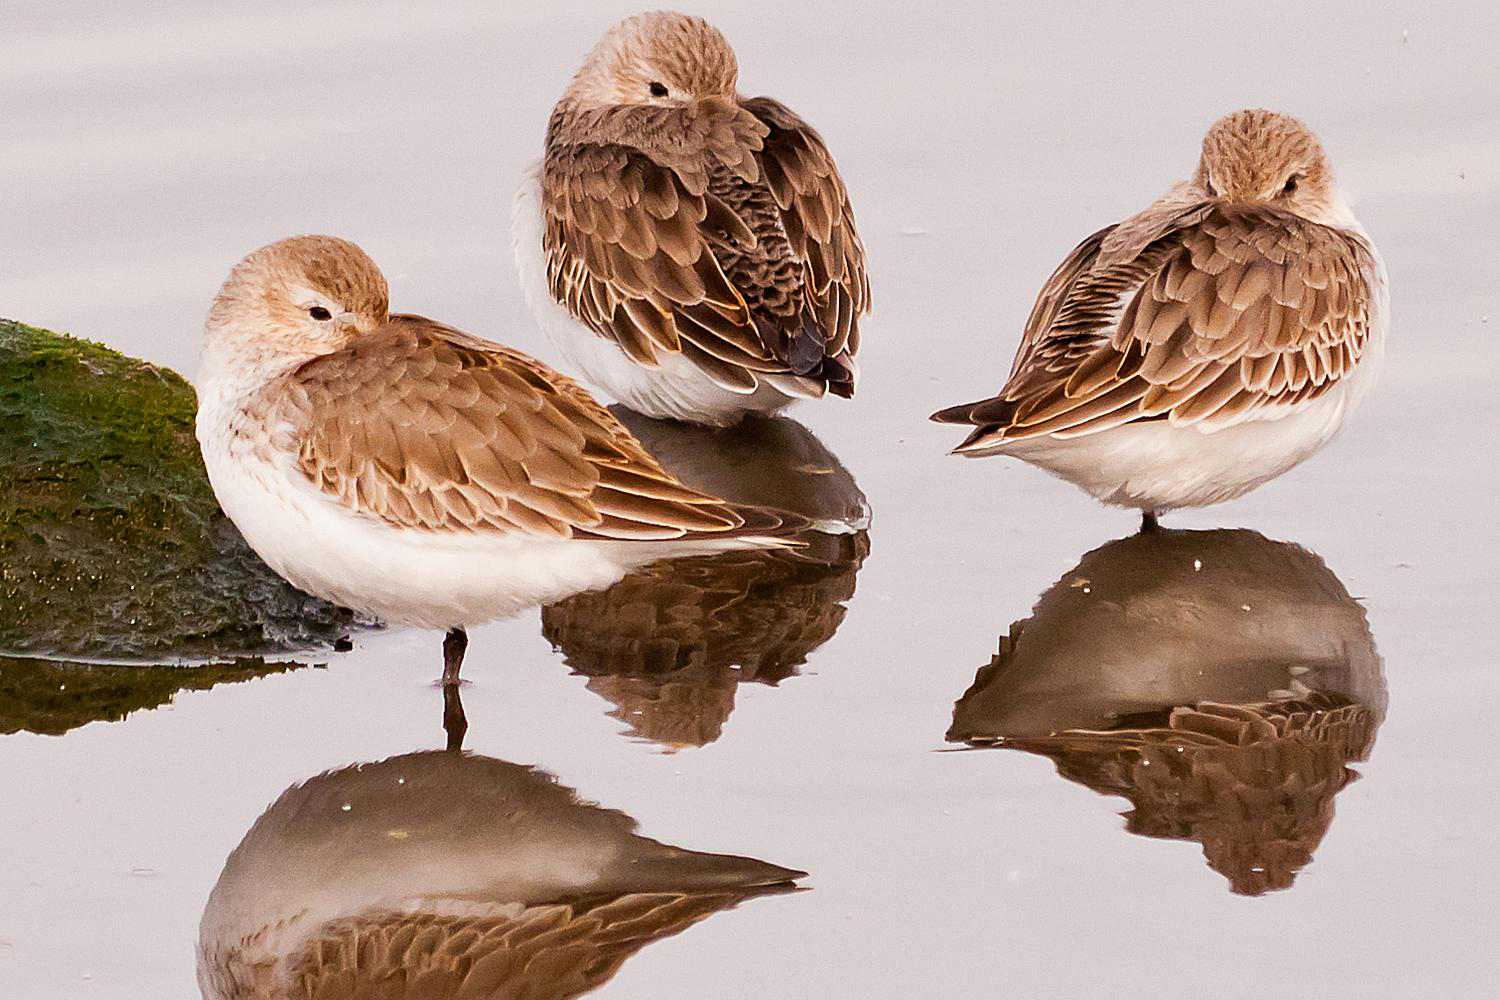 Three dunlins standing in shallow water